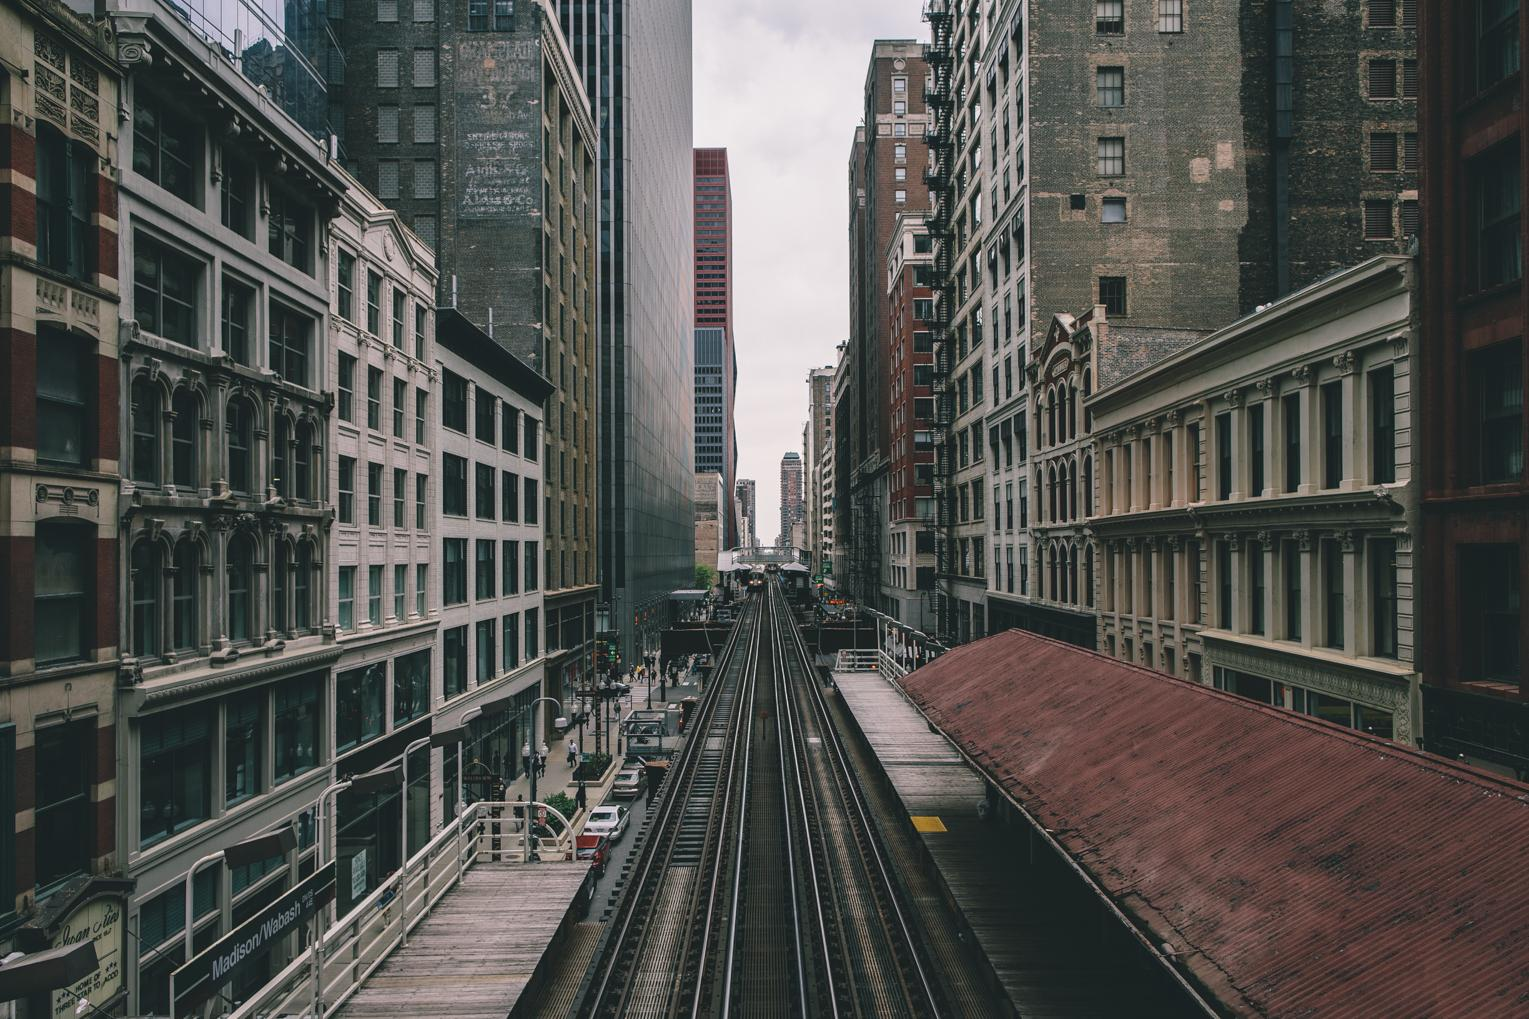 Welcome to Chicago. Sincerely, trashhand - image 5 - student project